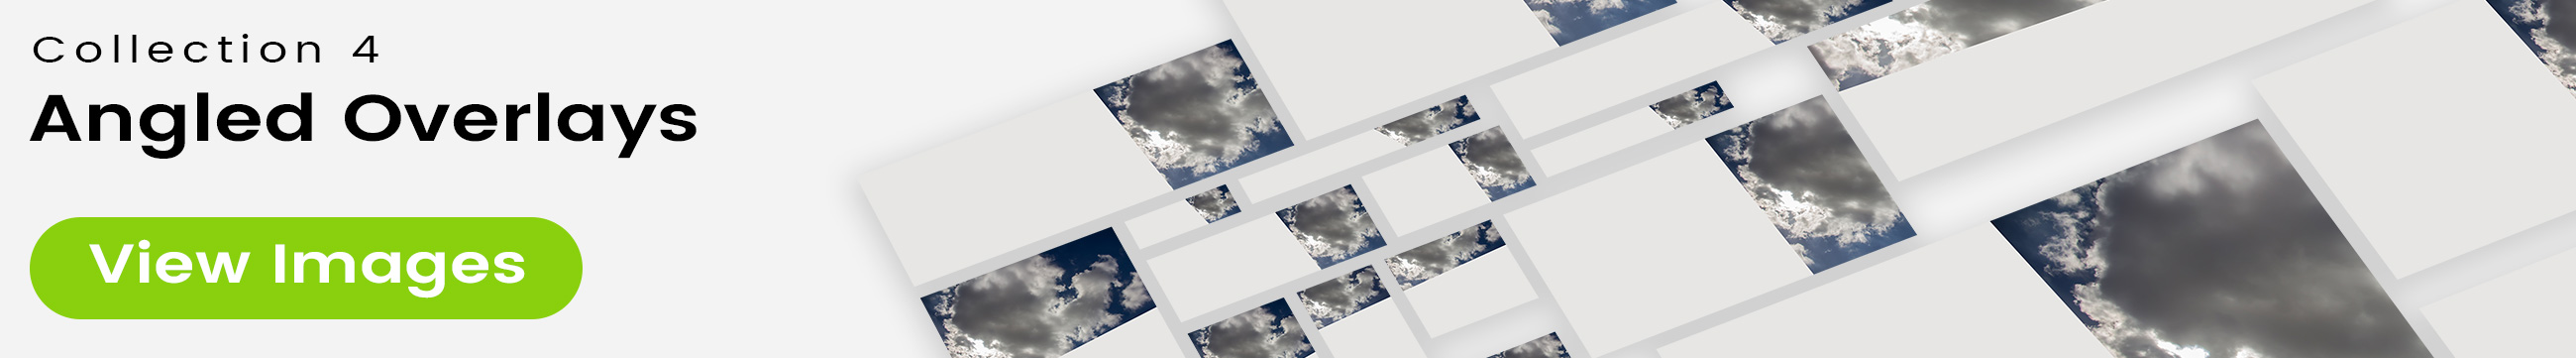 See 25 bonus images included with clouds stock image 9503. Collection 4 of 4 features an angled overlay design customized with a color that complements each photo.